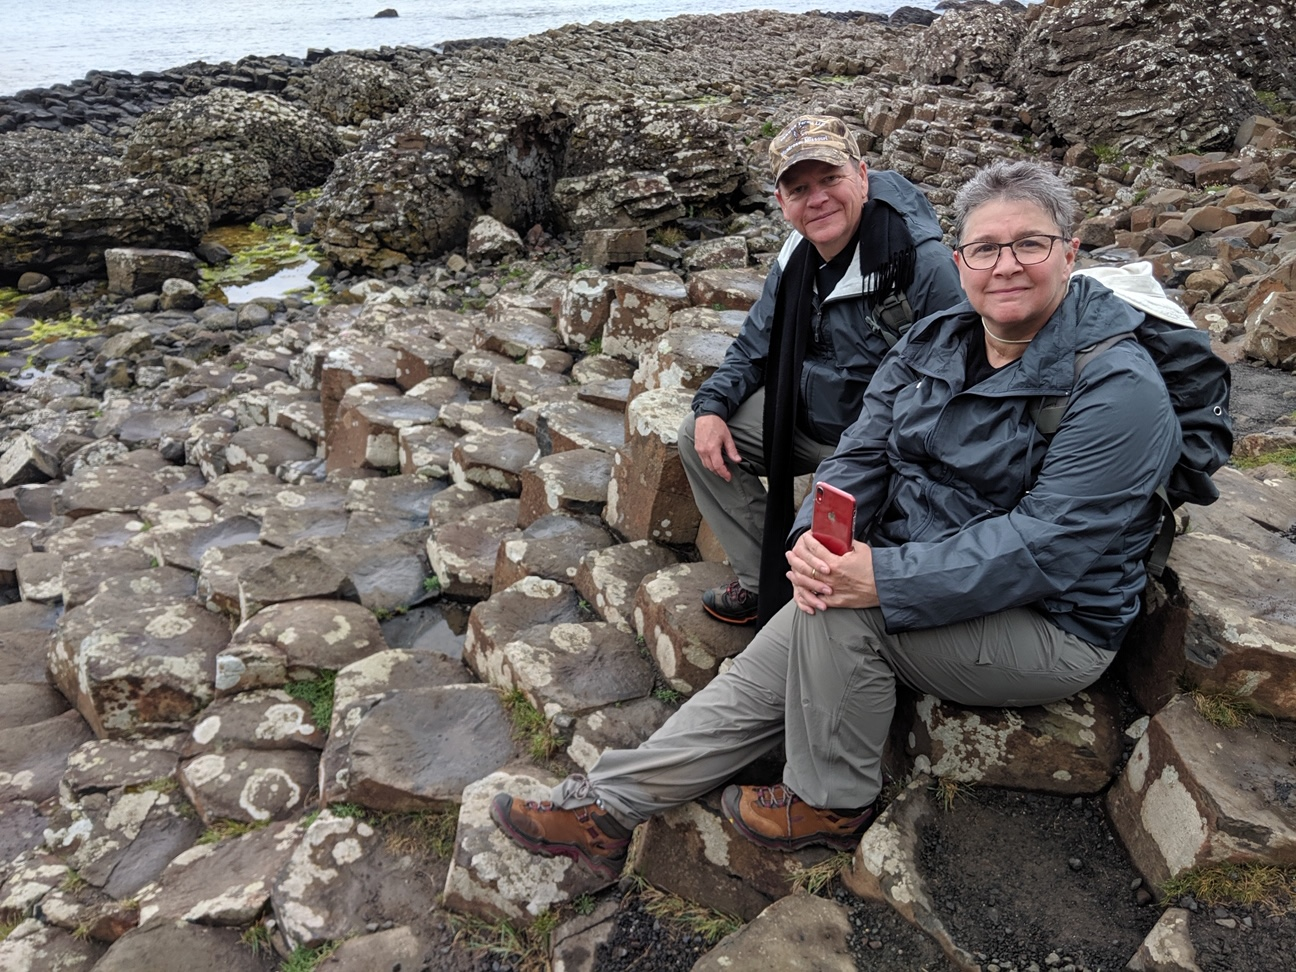 Jeff and Sue at Giant's Causeway. I have wanted to see it for a very long time. It was a long hard hike, cold and rainy. The stones were wet and slippery. I was not able to walk very far out (but I REALLY wanted to).